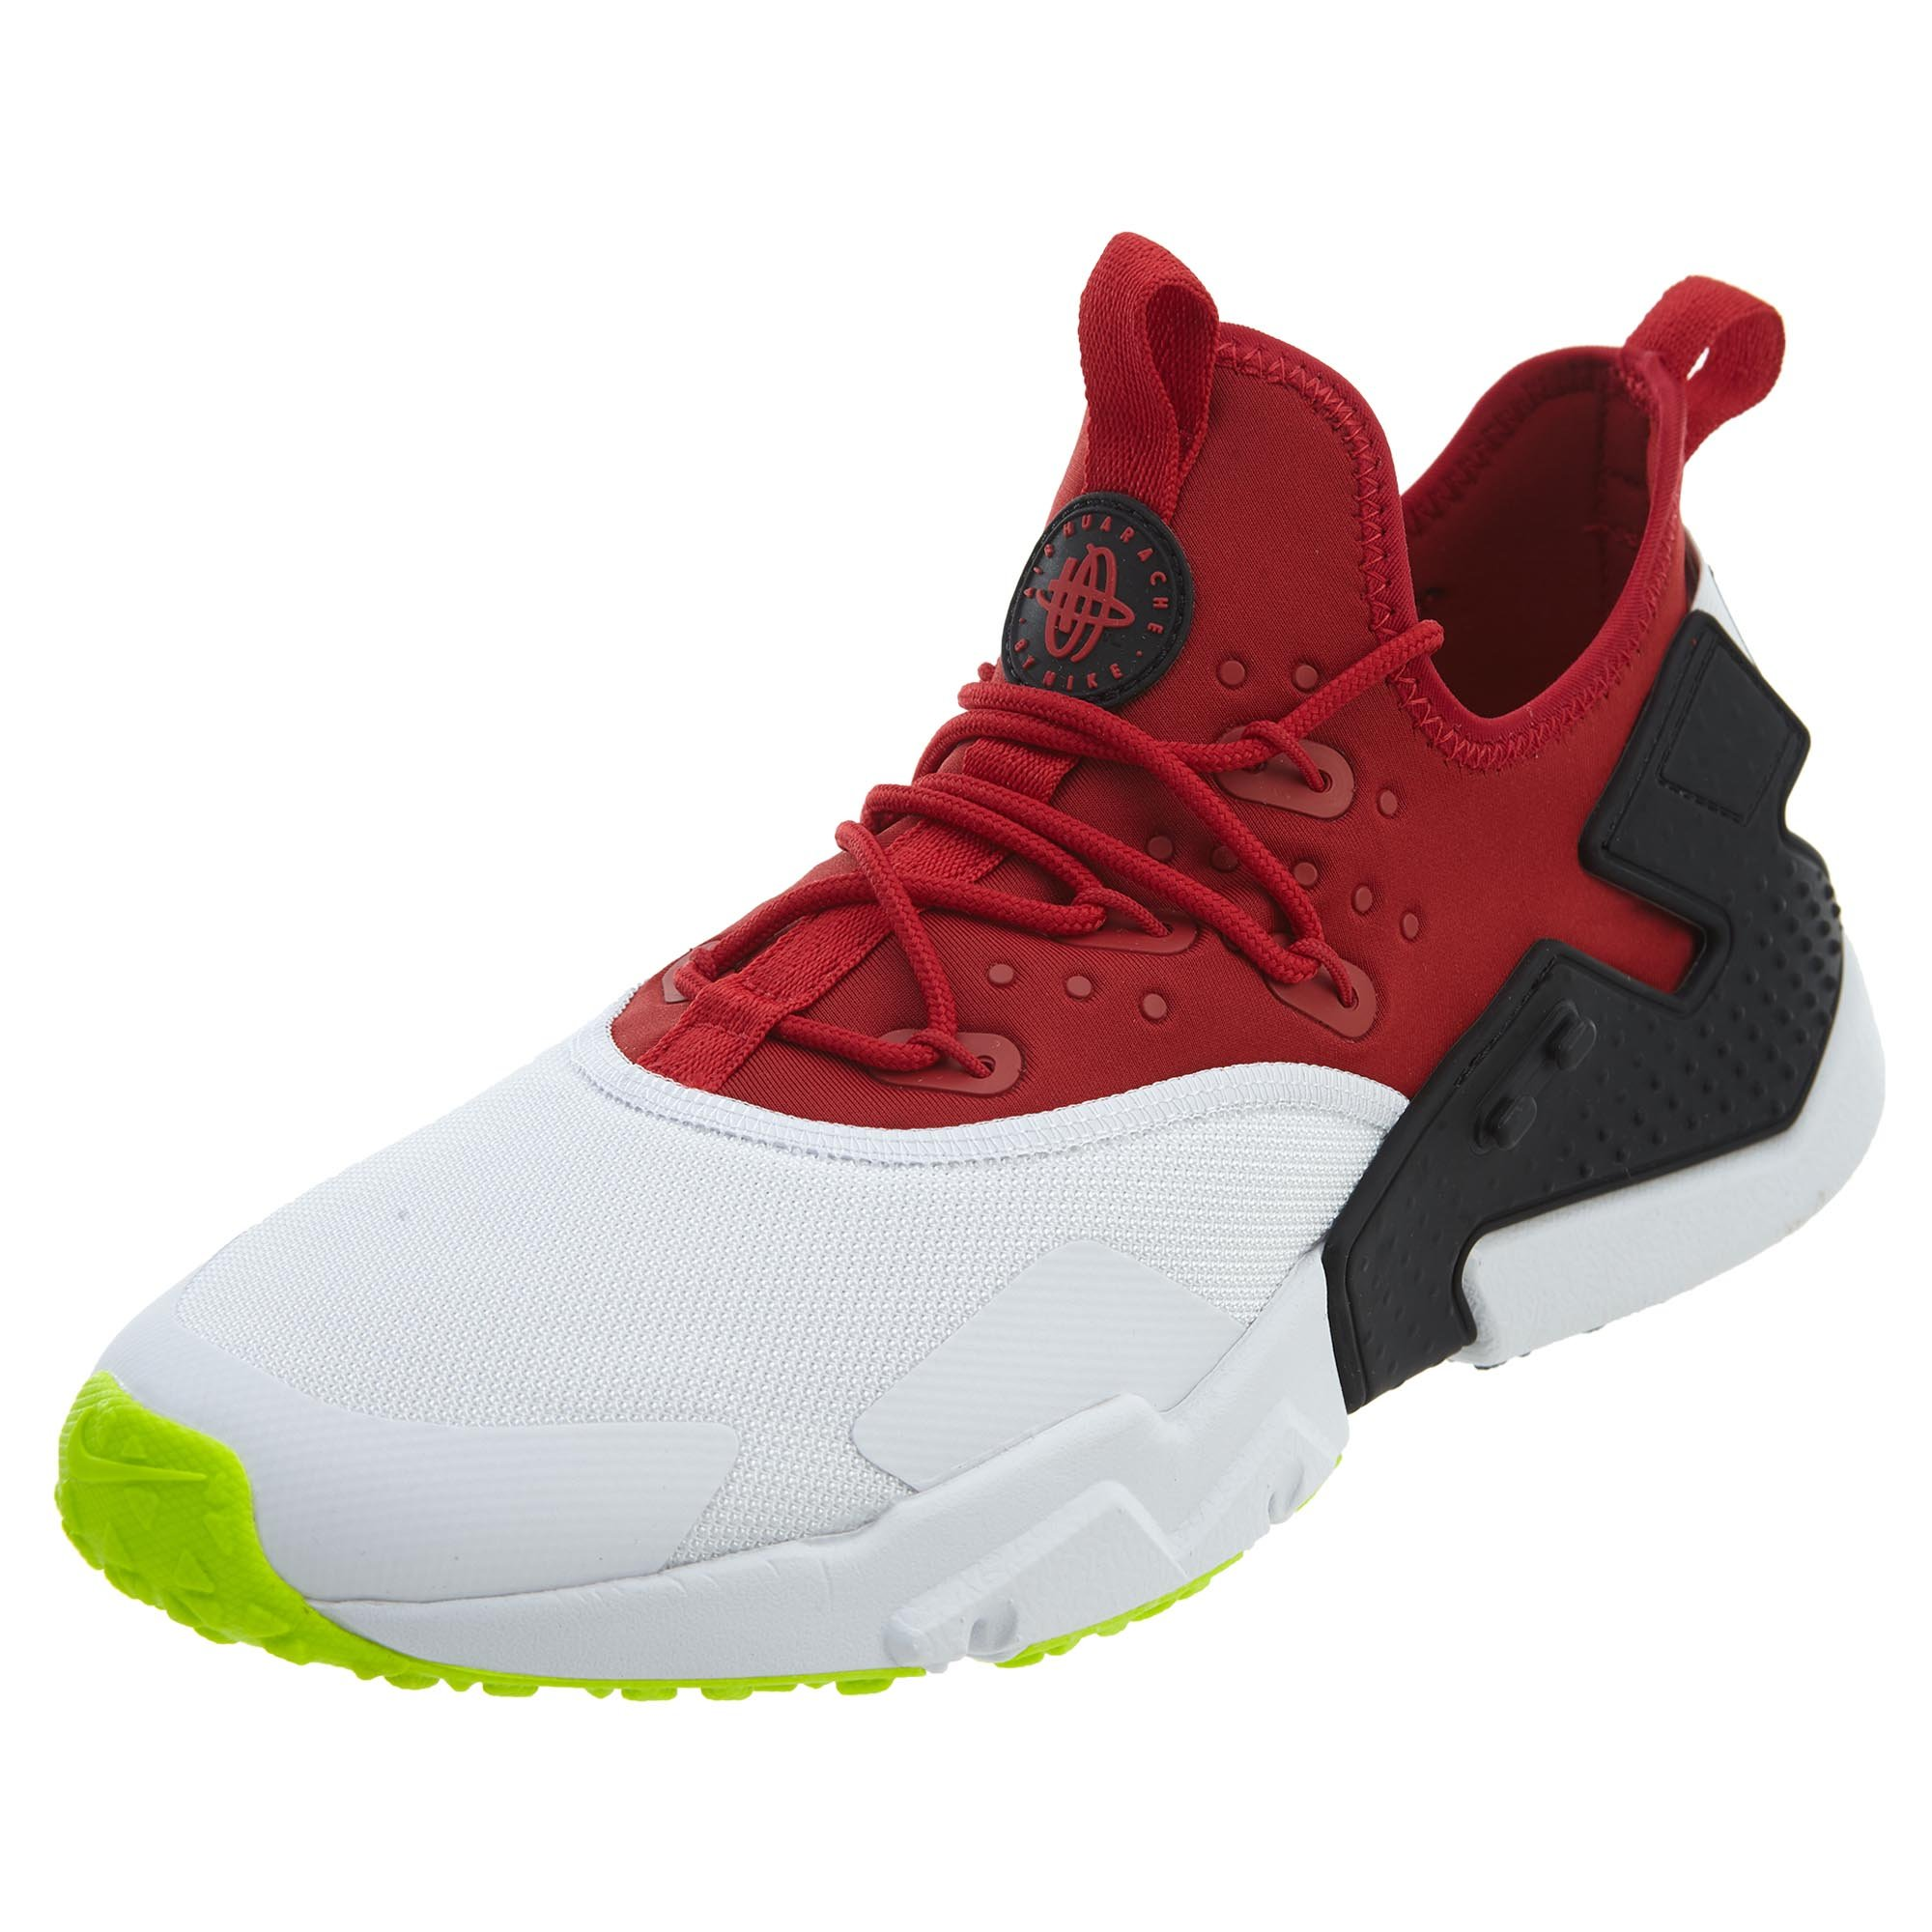 best website 27bf7 27d8f Nike Air Huarache Drift Gym Red/White-Black-Volt (8 D(M) US)